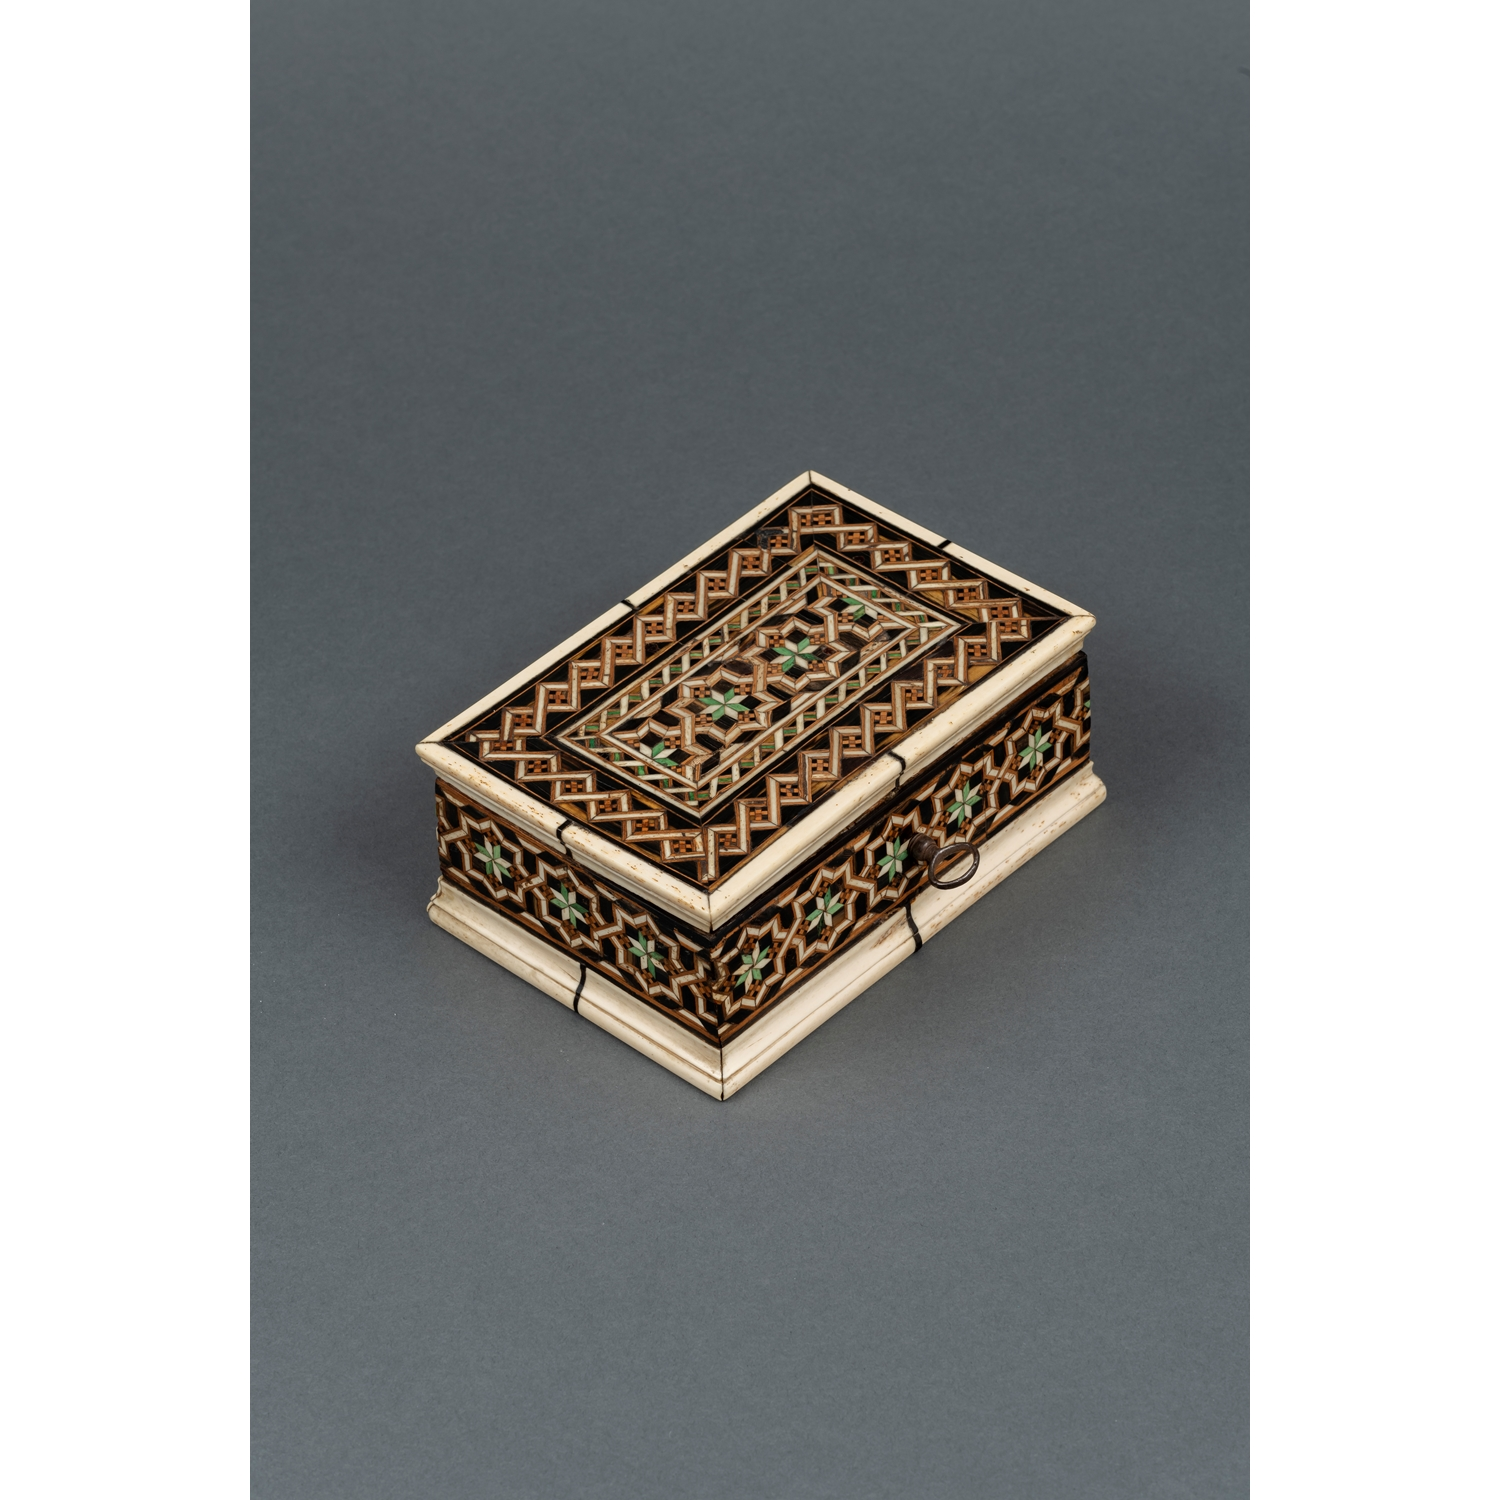 CIRCLE OF EMBRIACHI RECTANGULAR INLAID Marquetery alla Certosina on a wood core CASKET   Northern Italy Mid-15th century